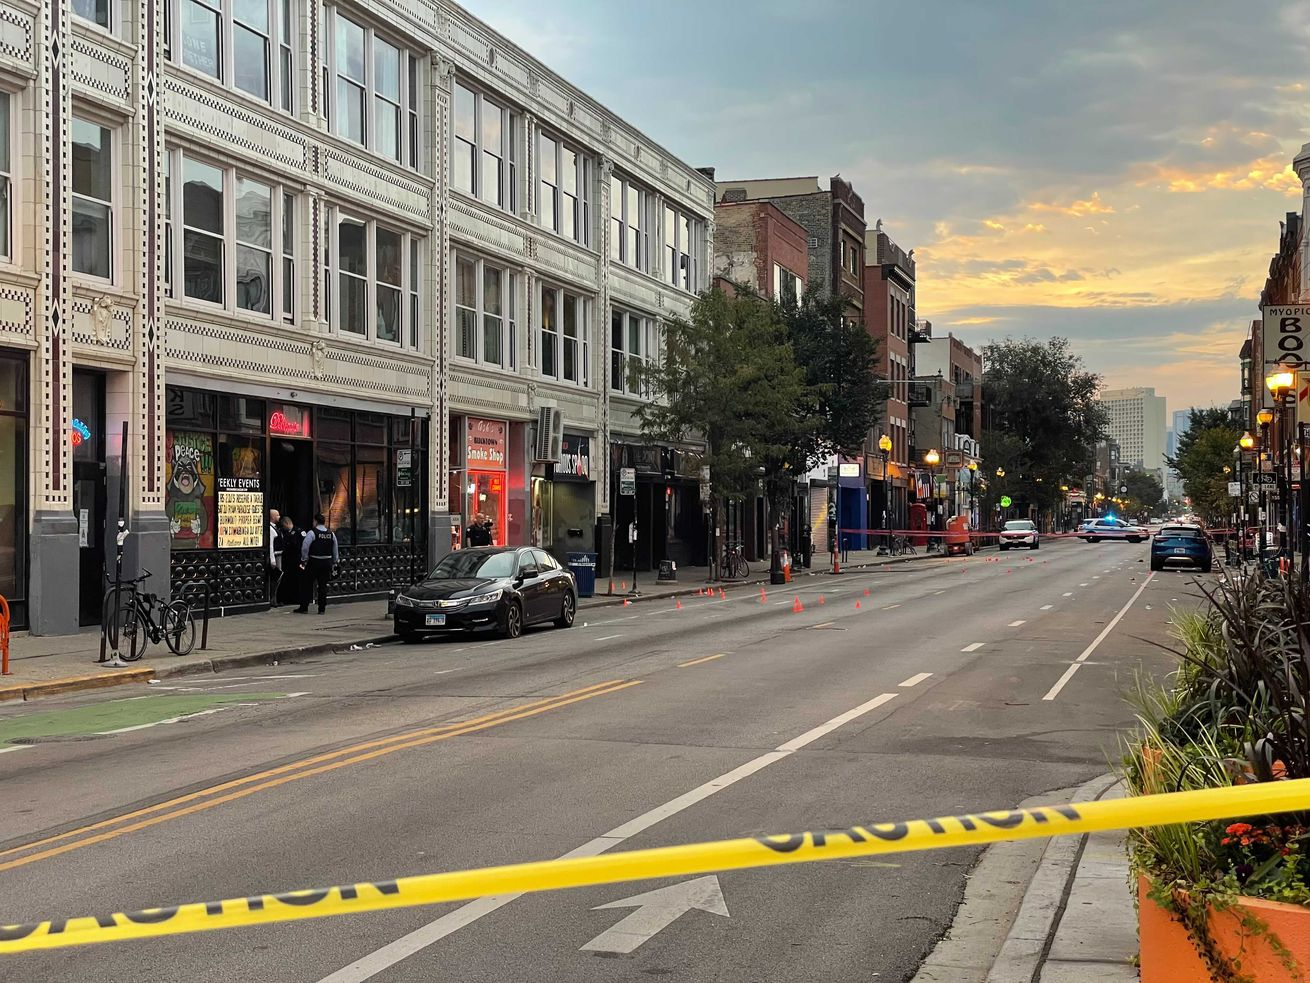 One person was killed and four others wounded in a drive-by shooting Sunday morning on Milwaukee Avenue in Wicker Park. They were among more than 40 people shot over the holiday weekend.